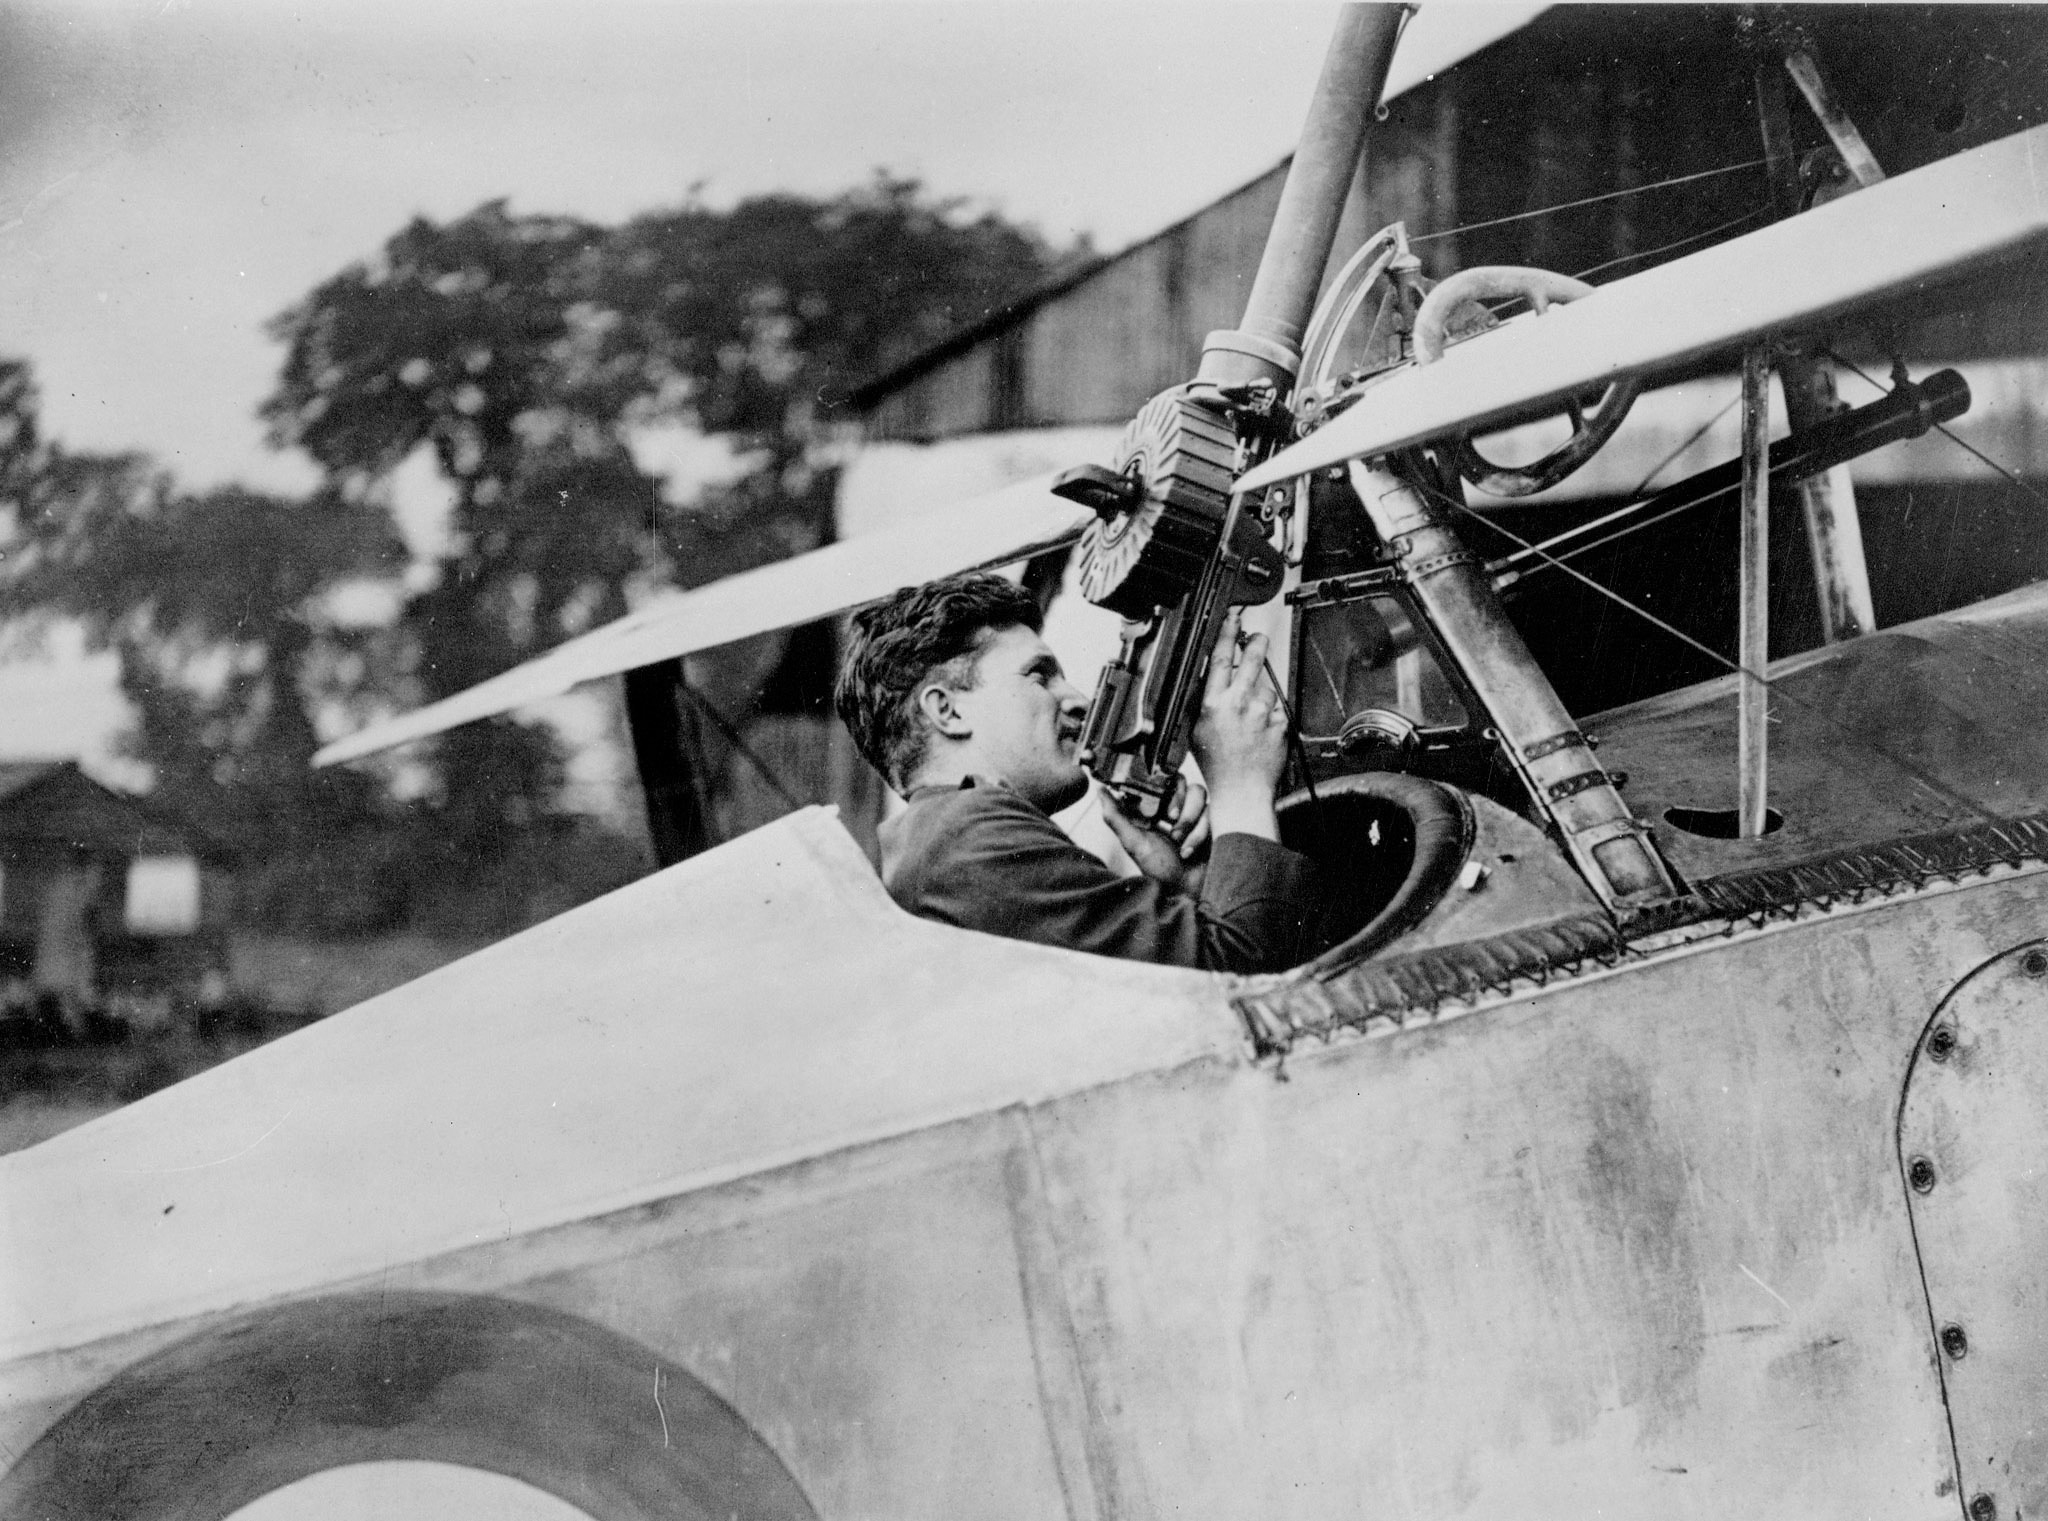 Captain Billy Bishop, seated in his Nieuport Scout aircraft, checks the action on his Lewis gun on August 6, 1917. PHOTO: DND Archives, AH-407B